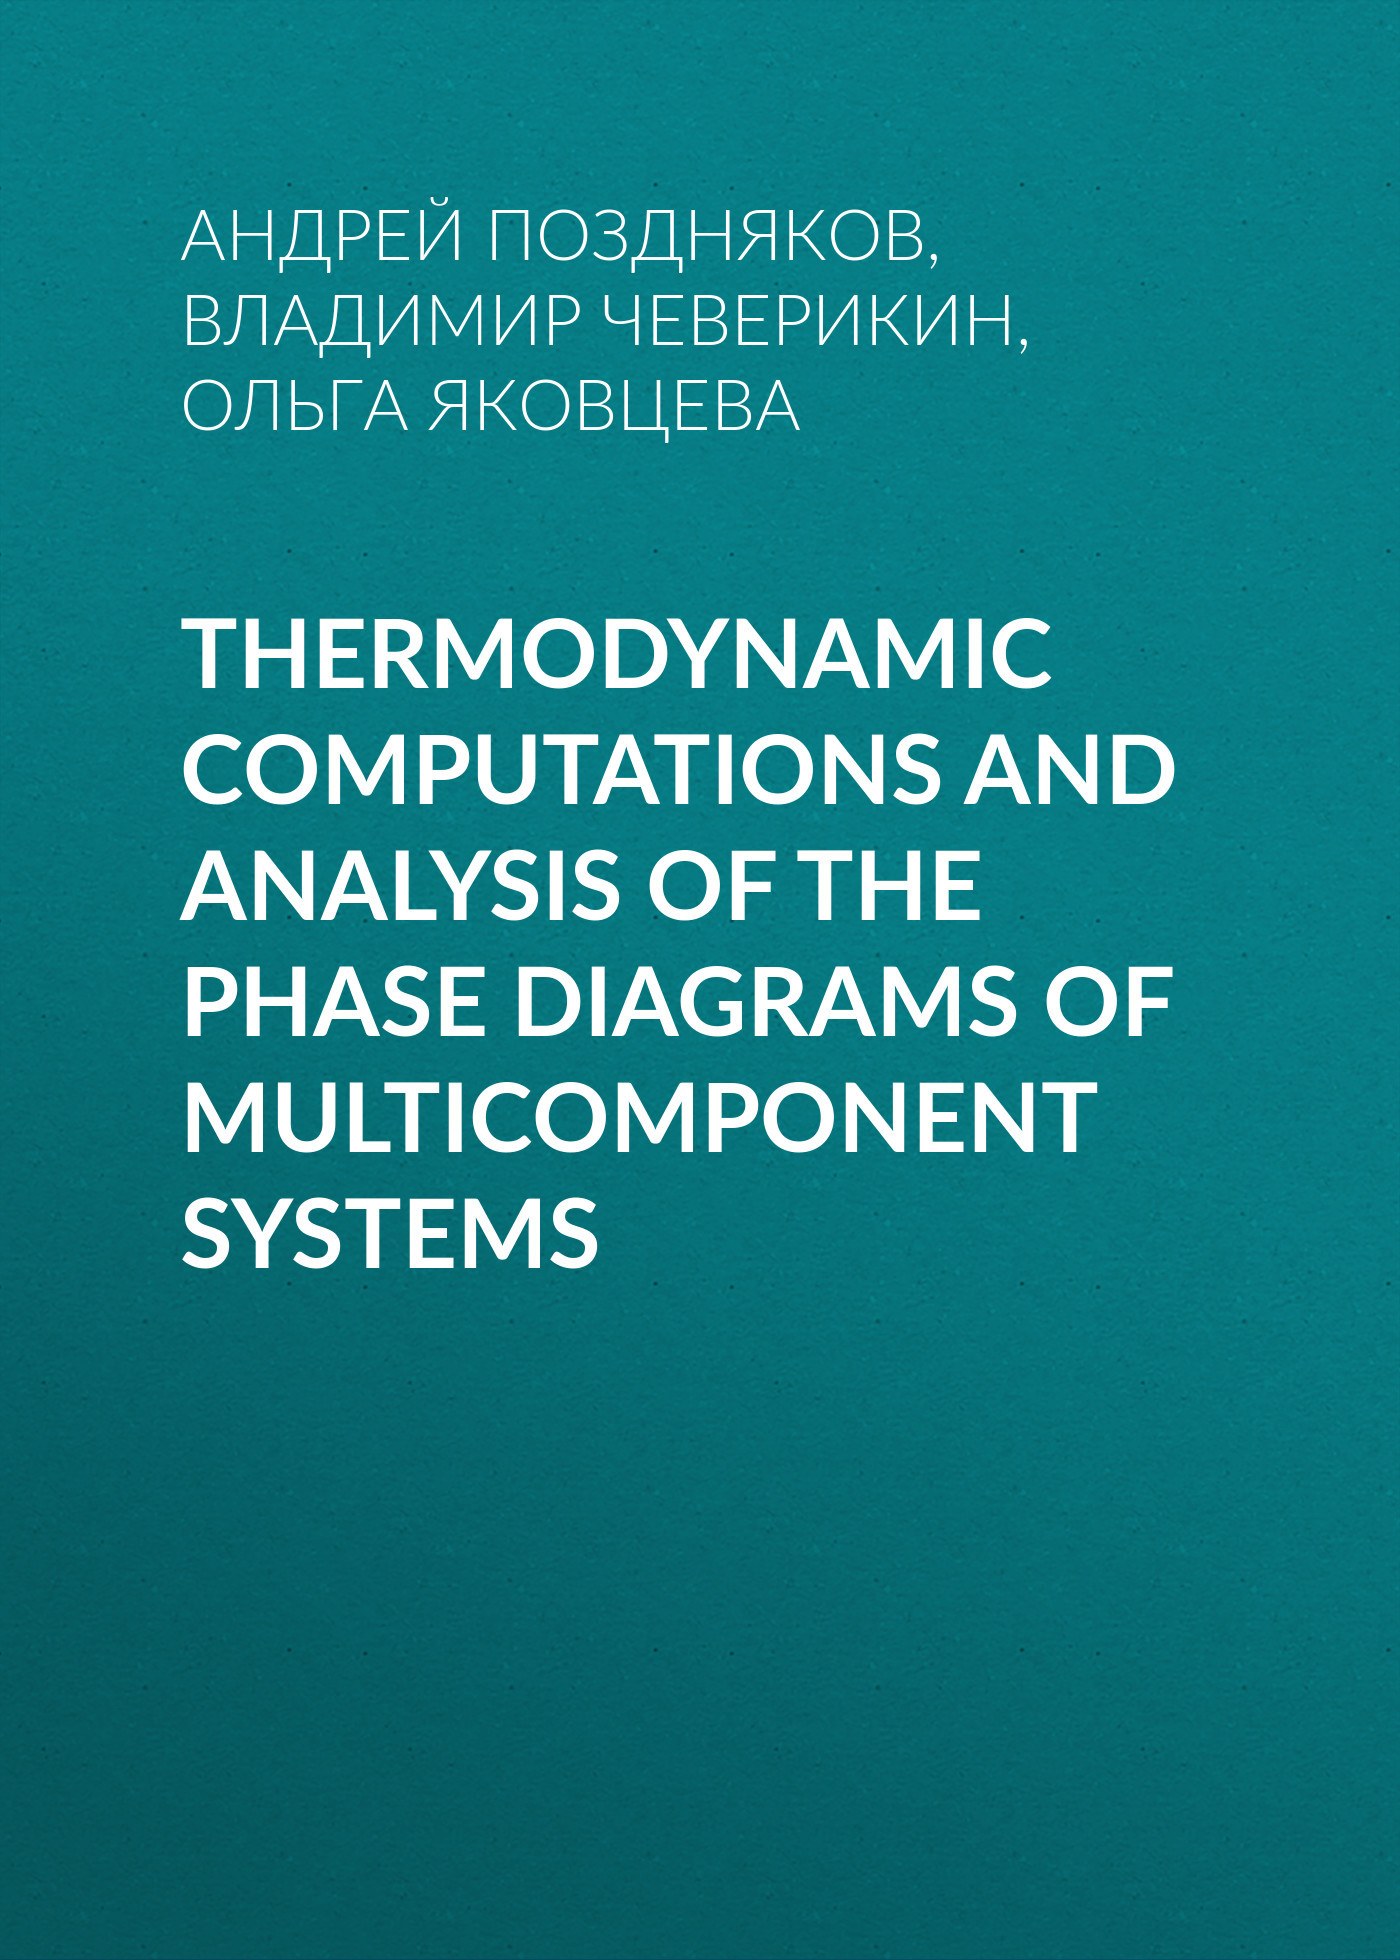 Владимир Чеверикин Thermodynamic Computations and Analysis of The Phase Diagrams of Multicomponent Systems point systems migration policy and international students flow